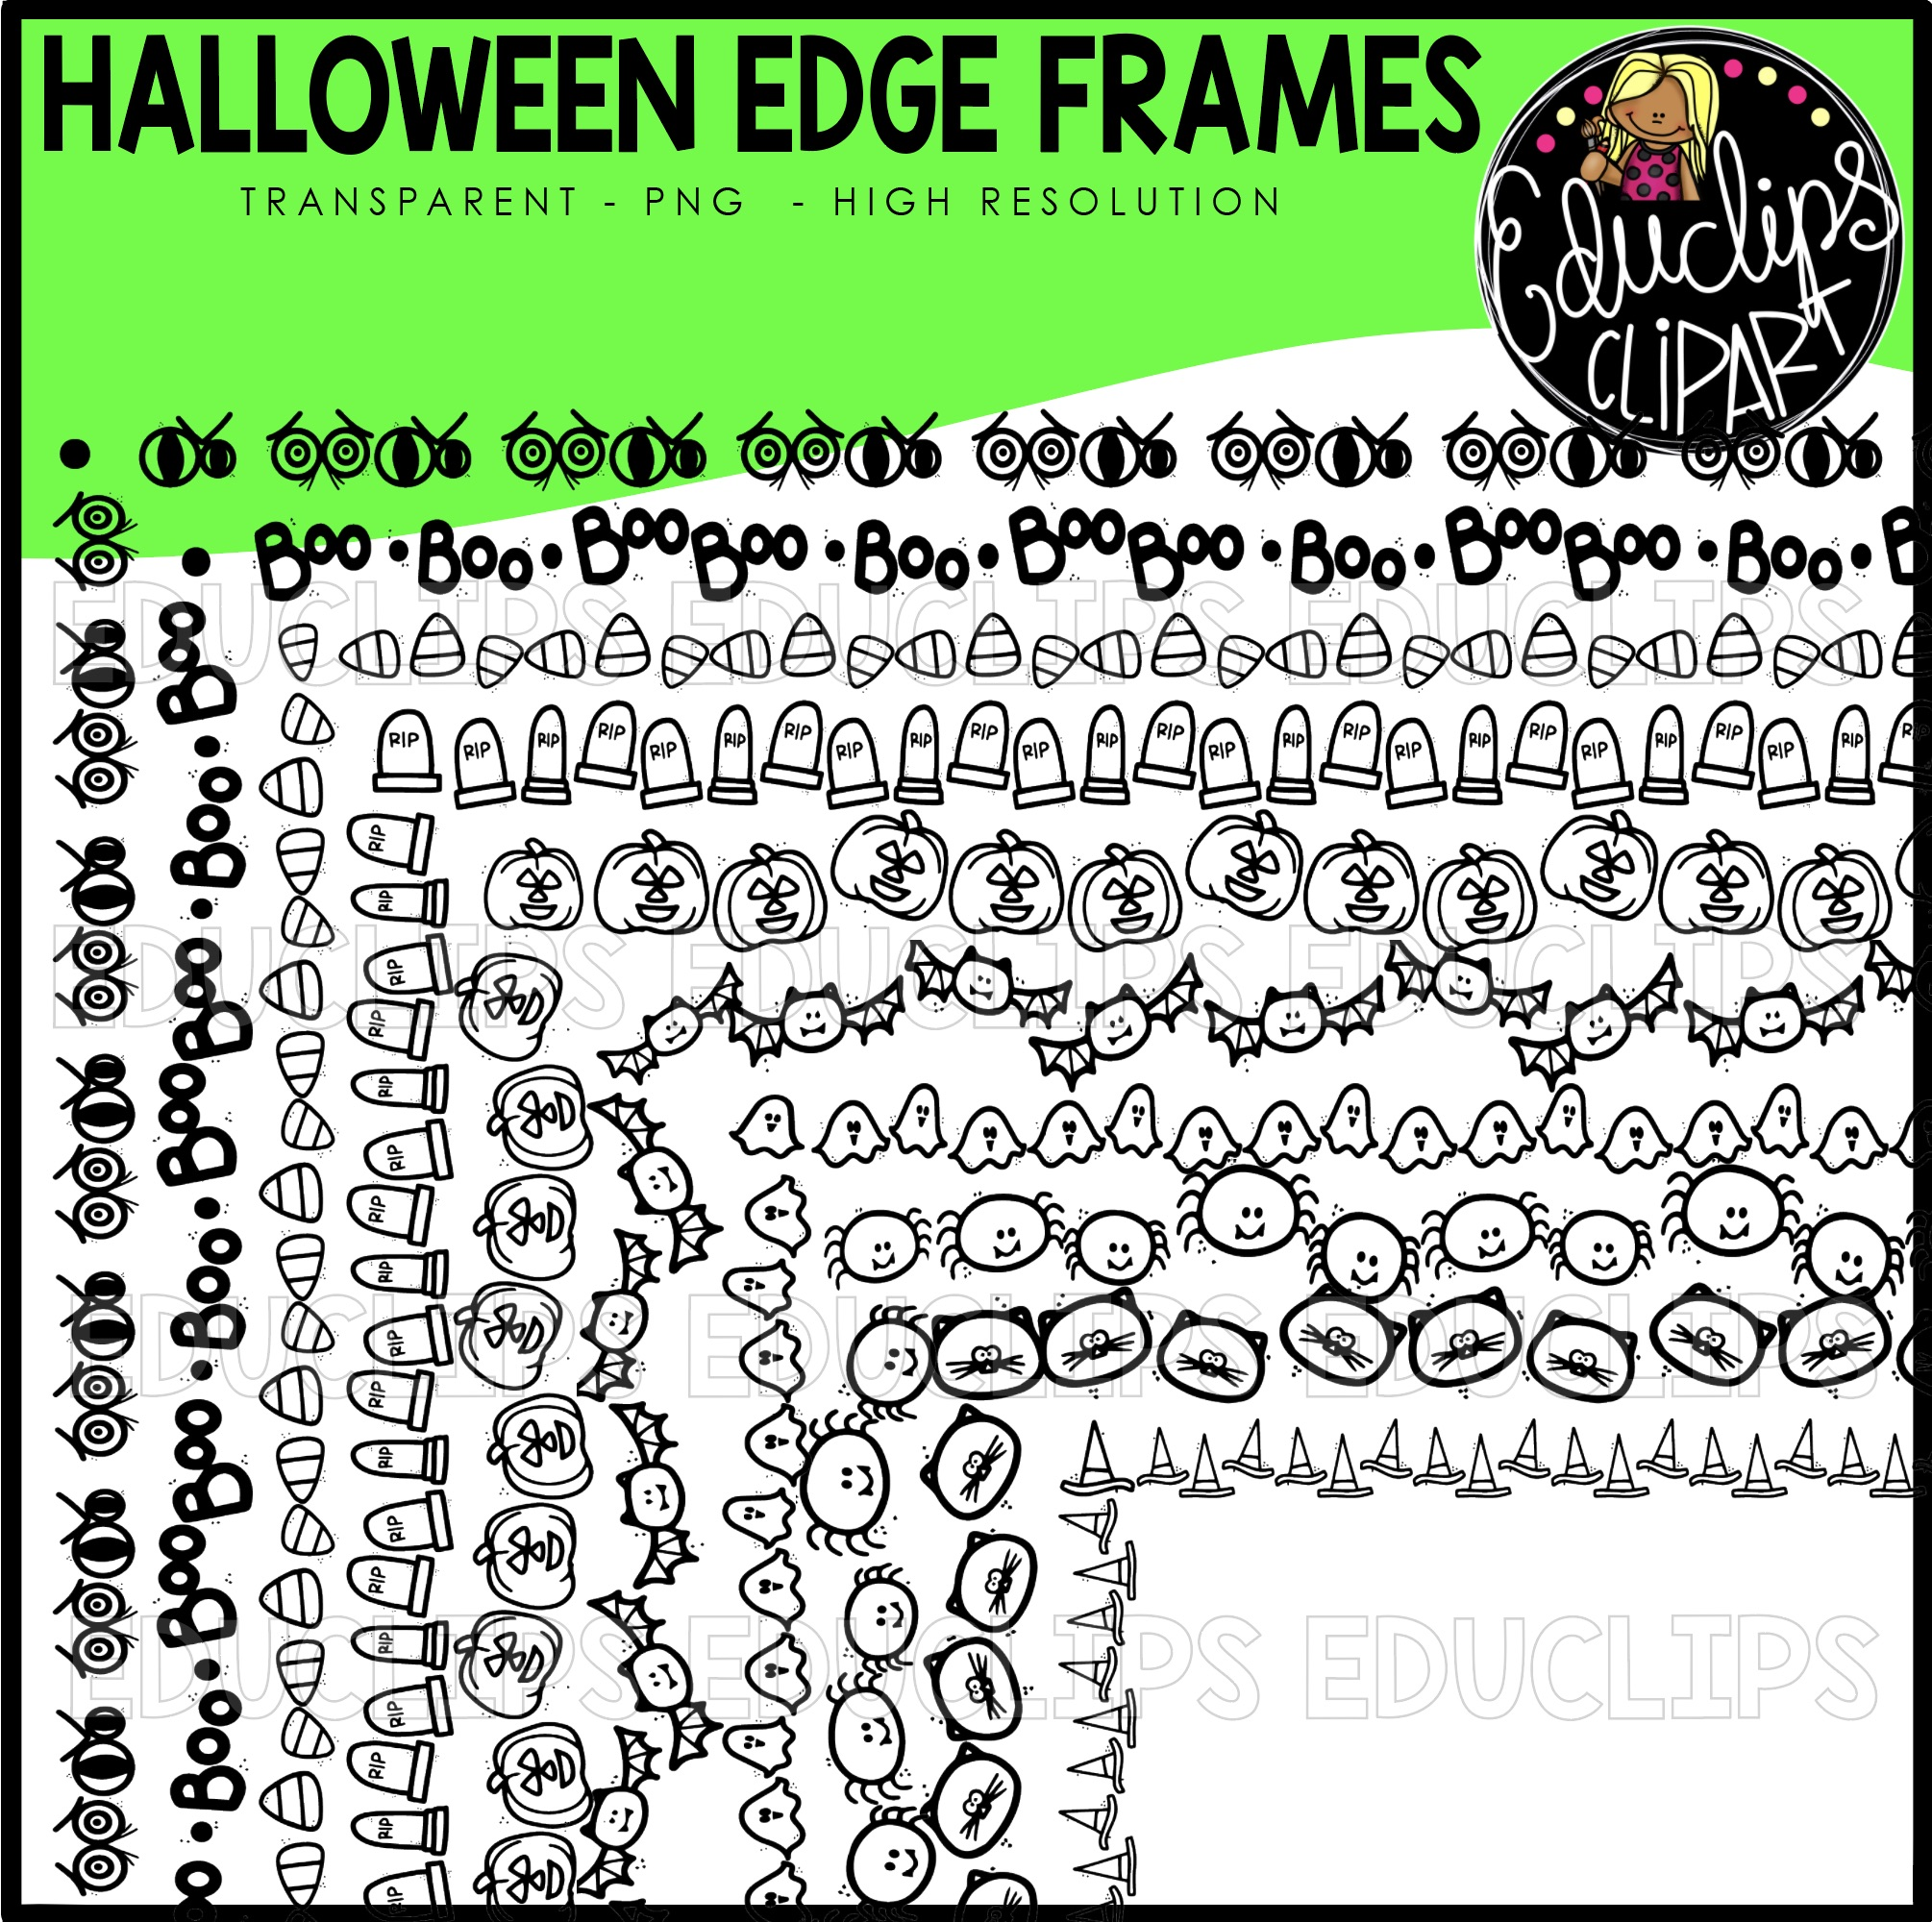 halloween edge frames clipart set (black images) - welcome to